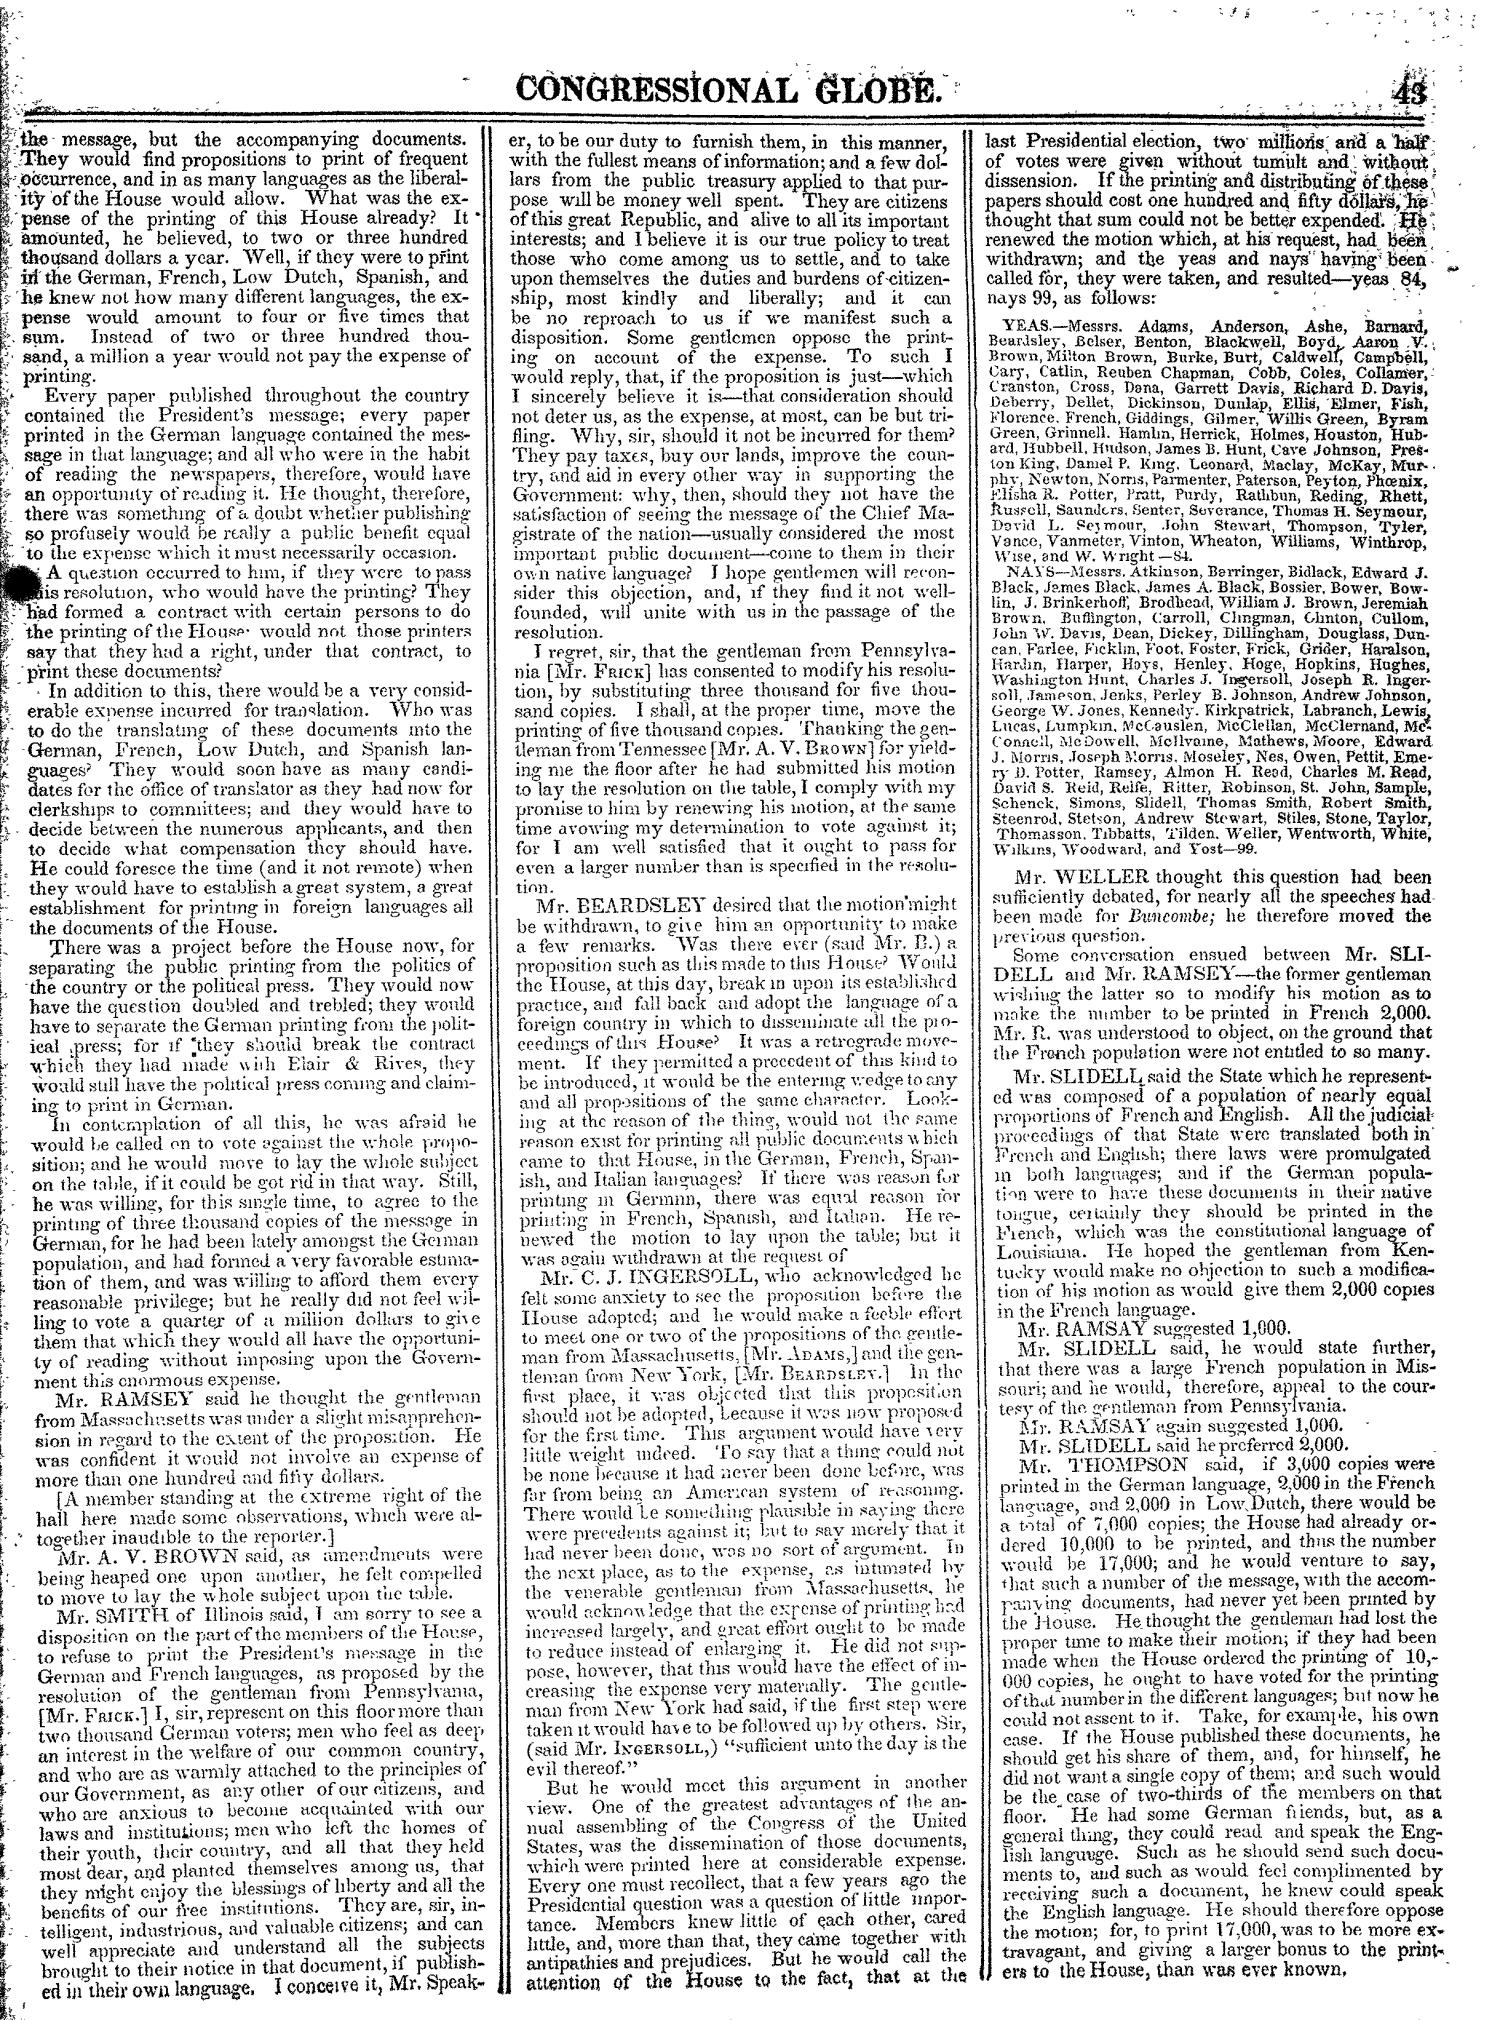 The Congressional Globe, Volume 13, Part 1: Twenty-Eighth Congress, First Session                                                                                                      43